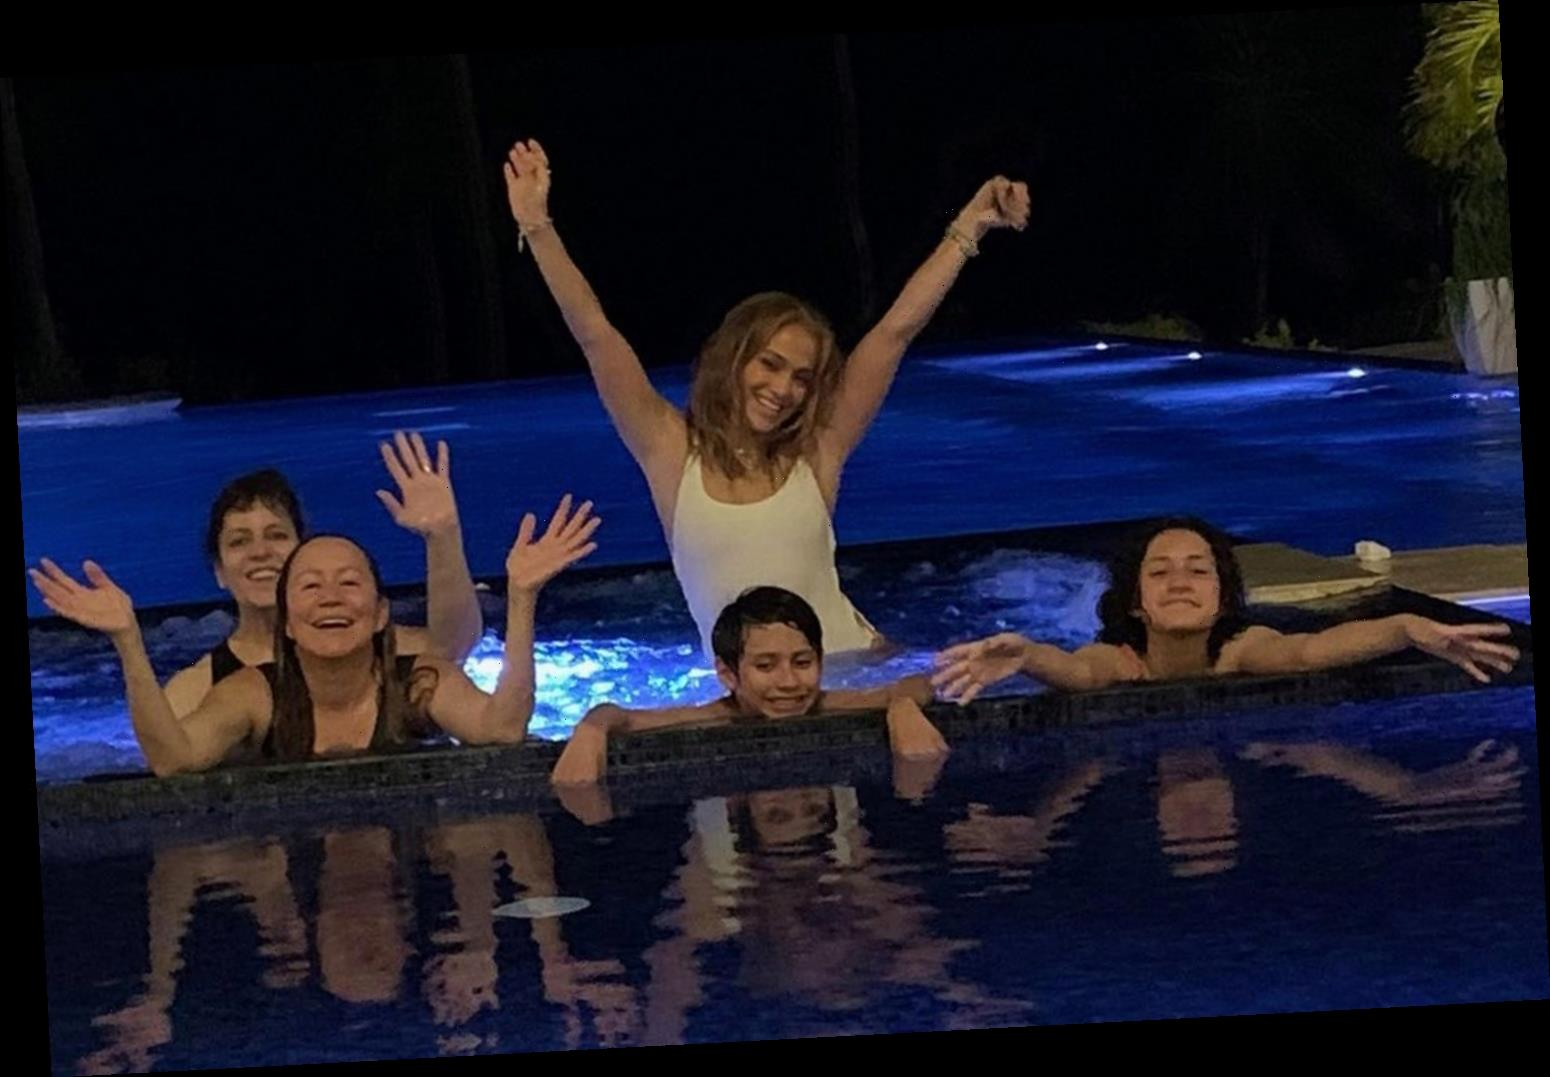 JLo, 51, and twins Max and Emme, 13, hit the pool without fiance ARod after rumors he had 'affair' with Madison LeCroy